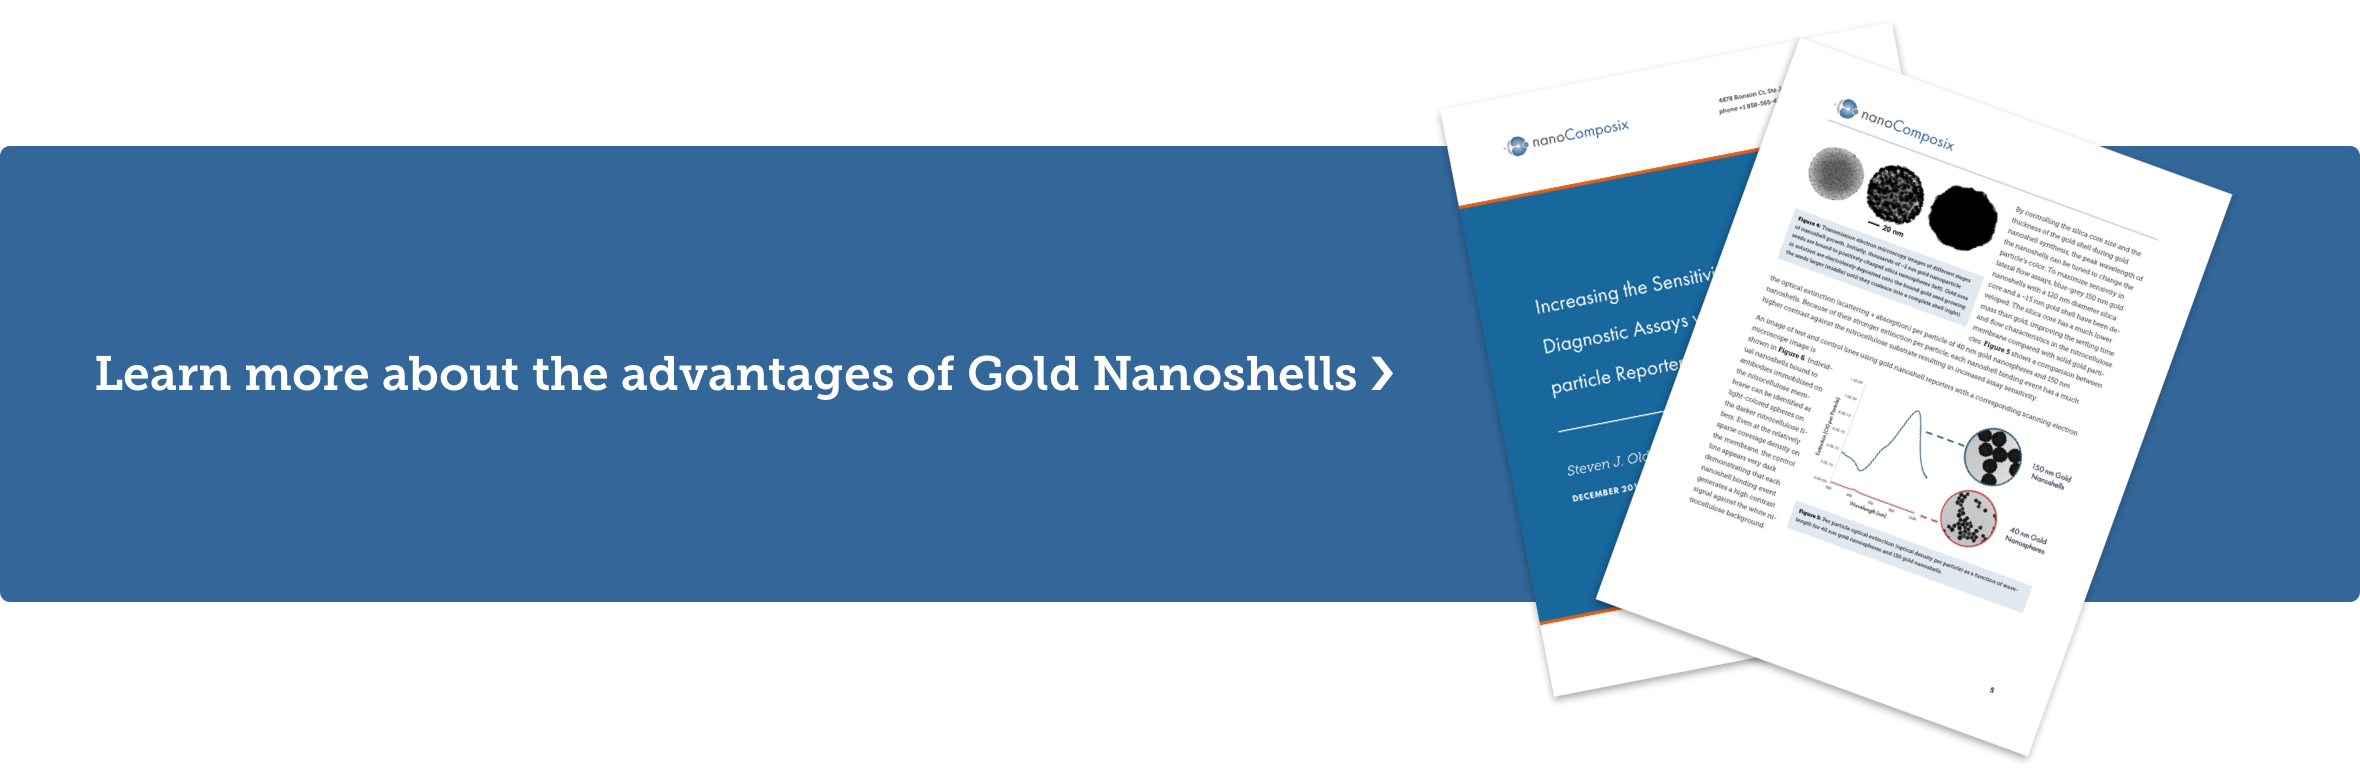 Learn more about the advantages of Gold Nanoshells